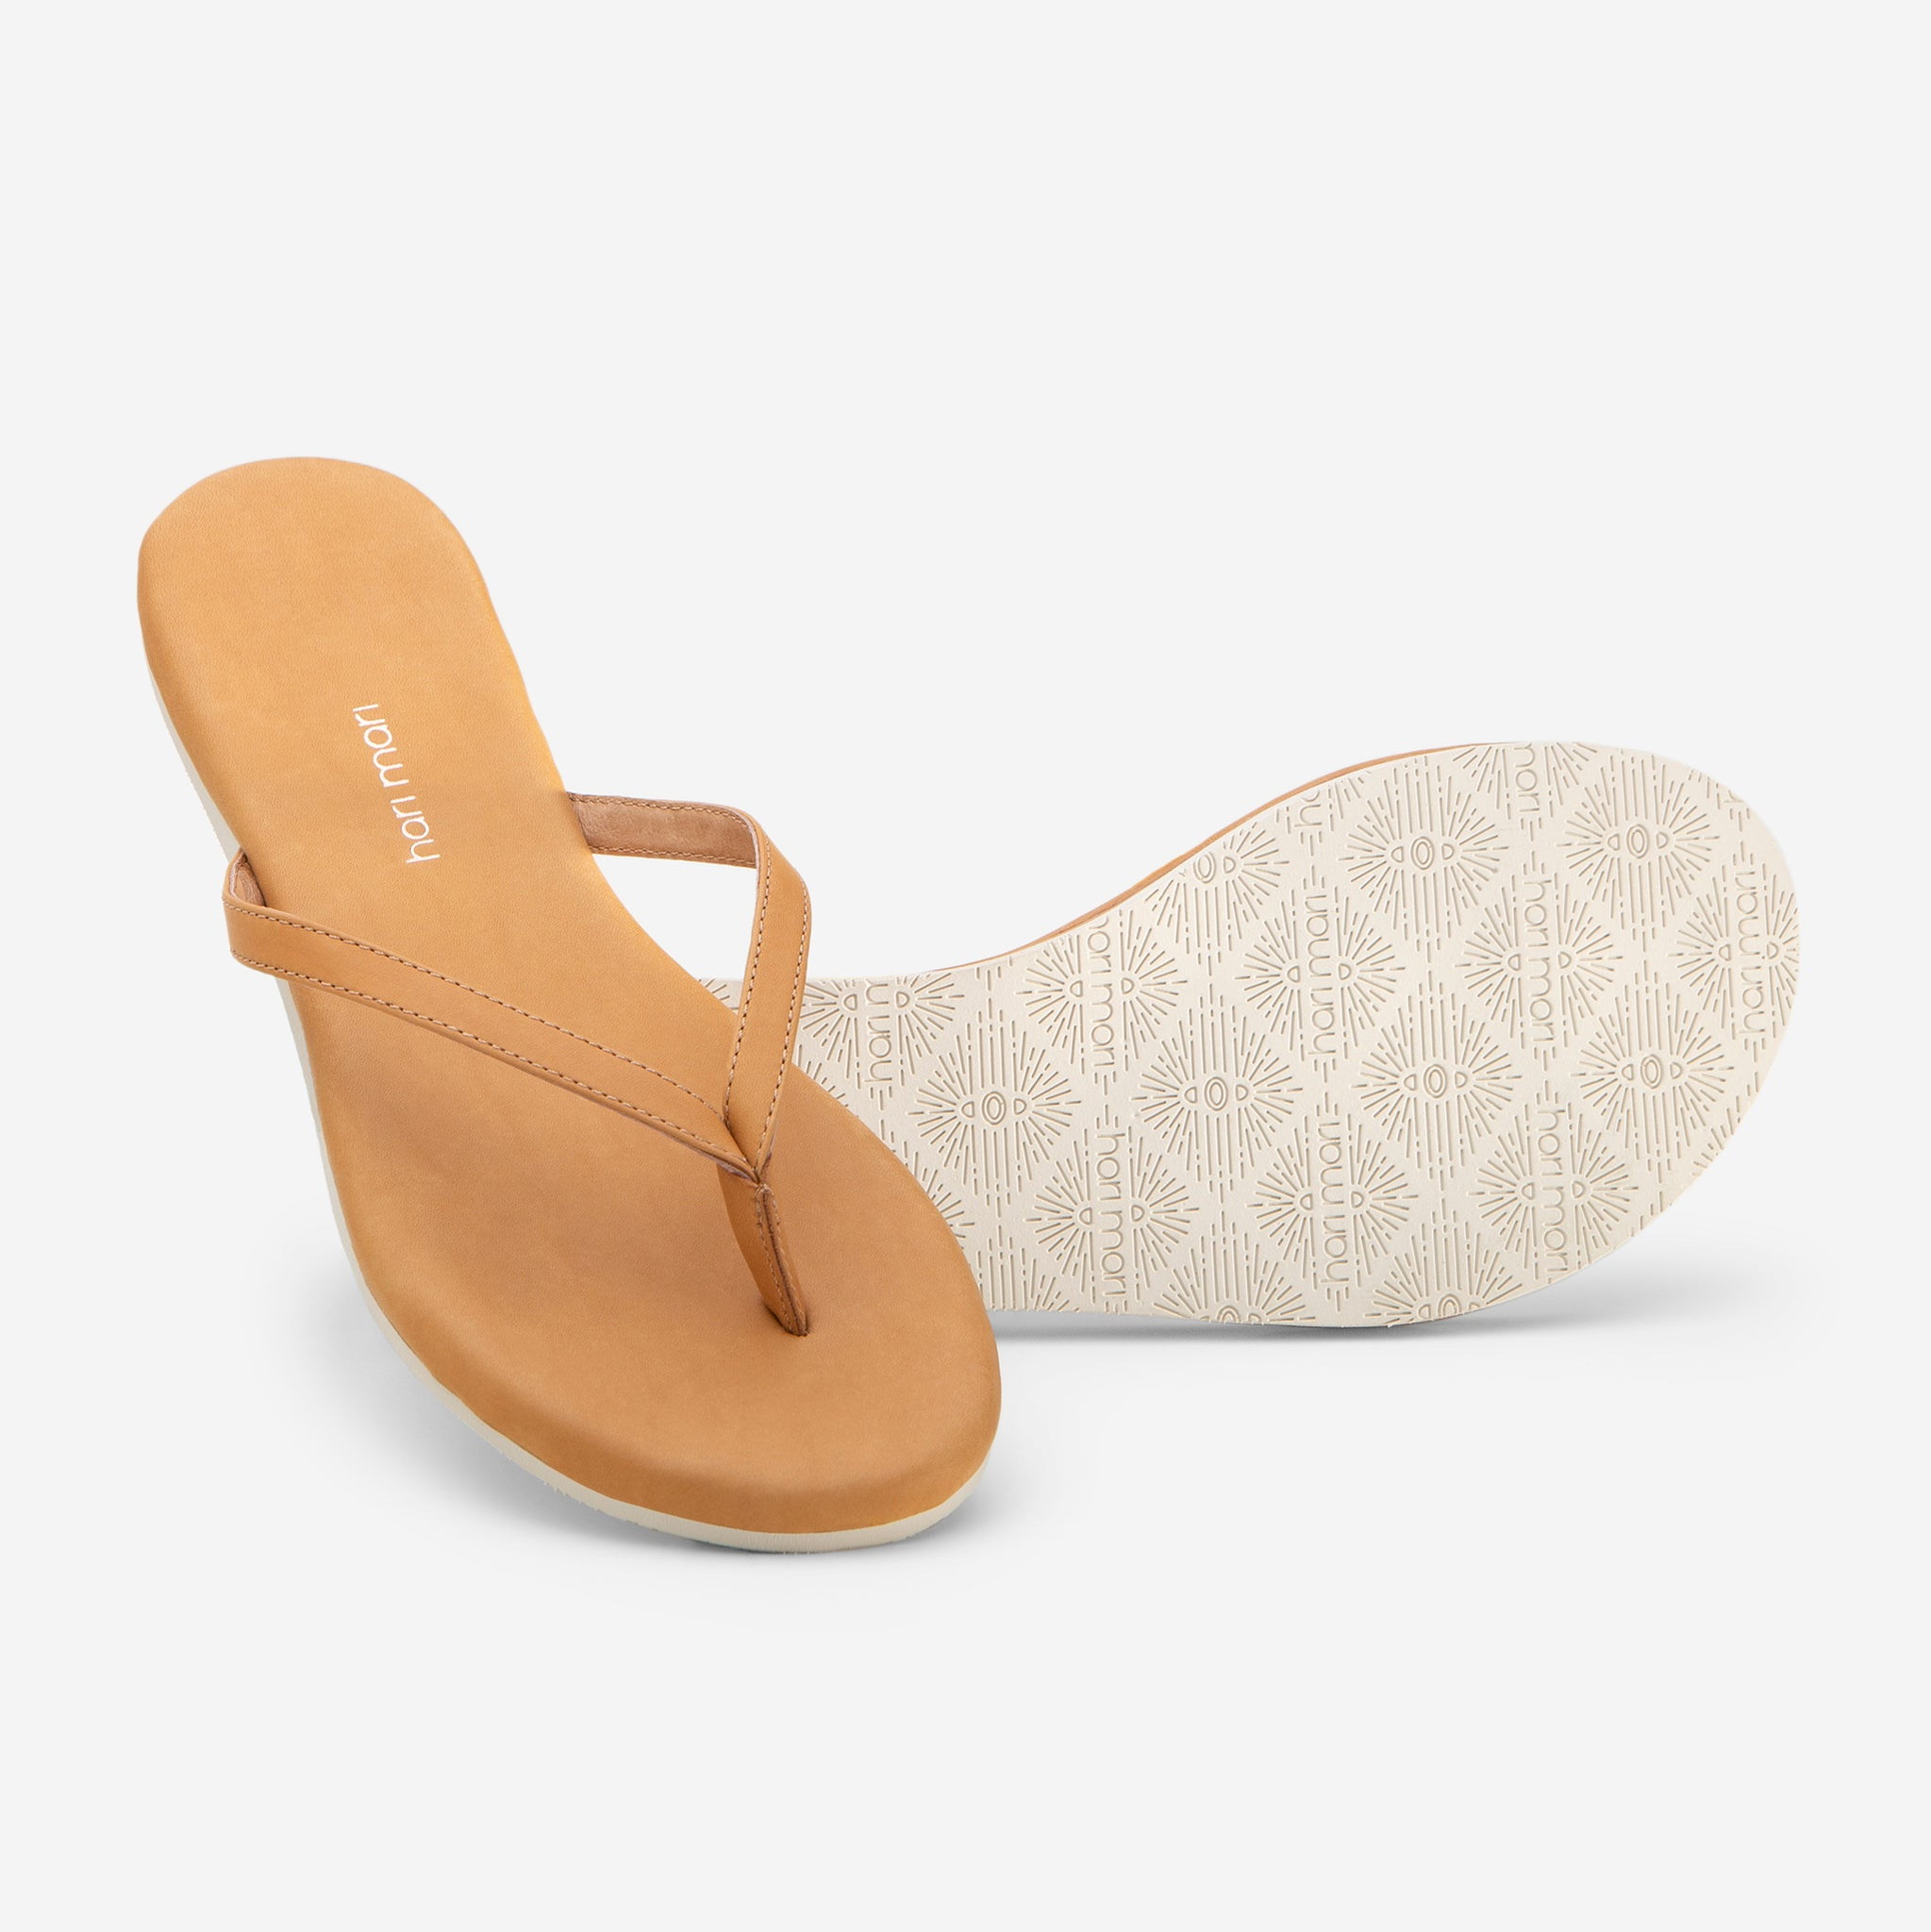 Hari Mari Women's The Mari Flip Flop in Natural  on white background showing flip flop and bottom of flip flop rubber outsole